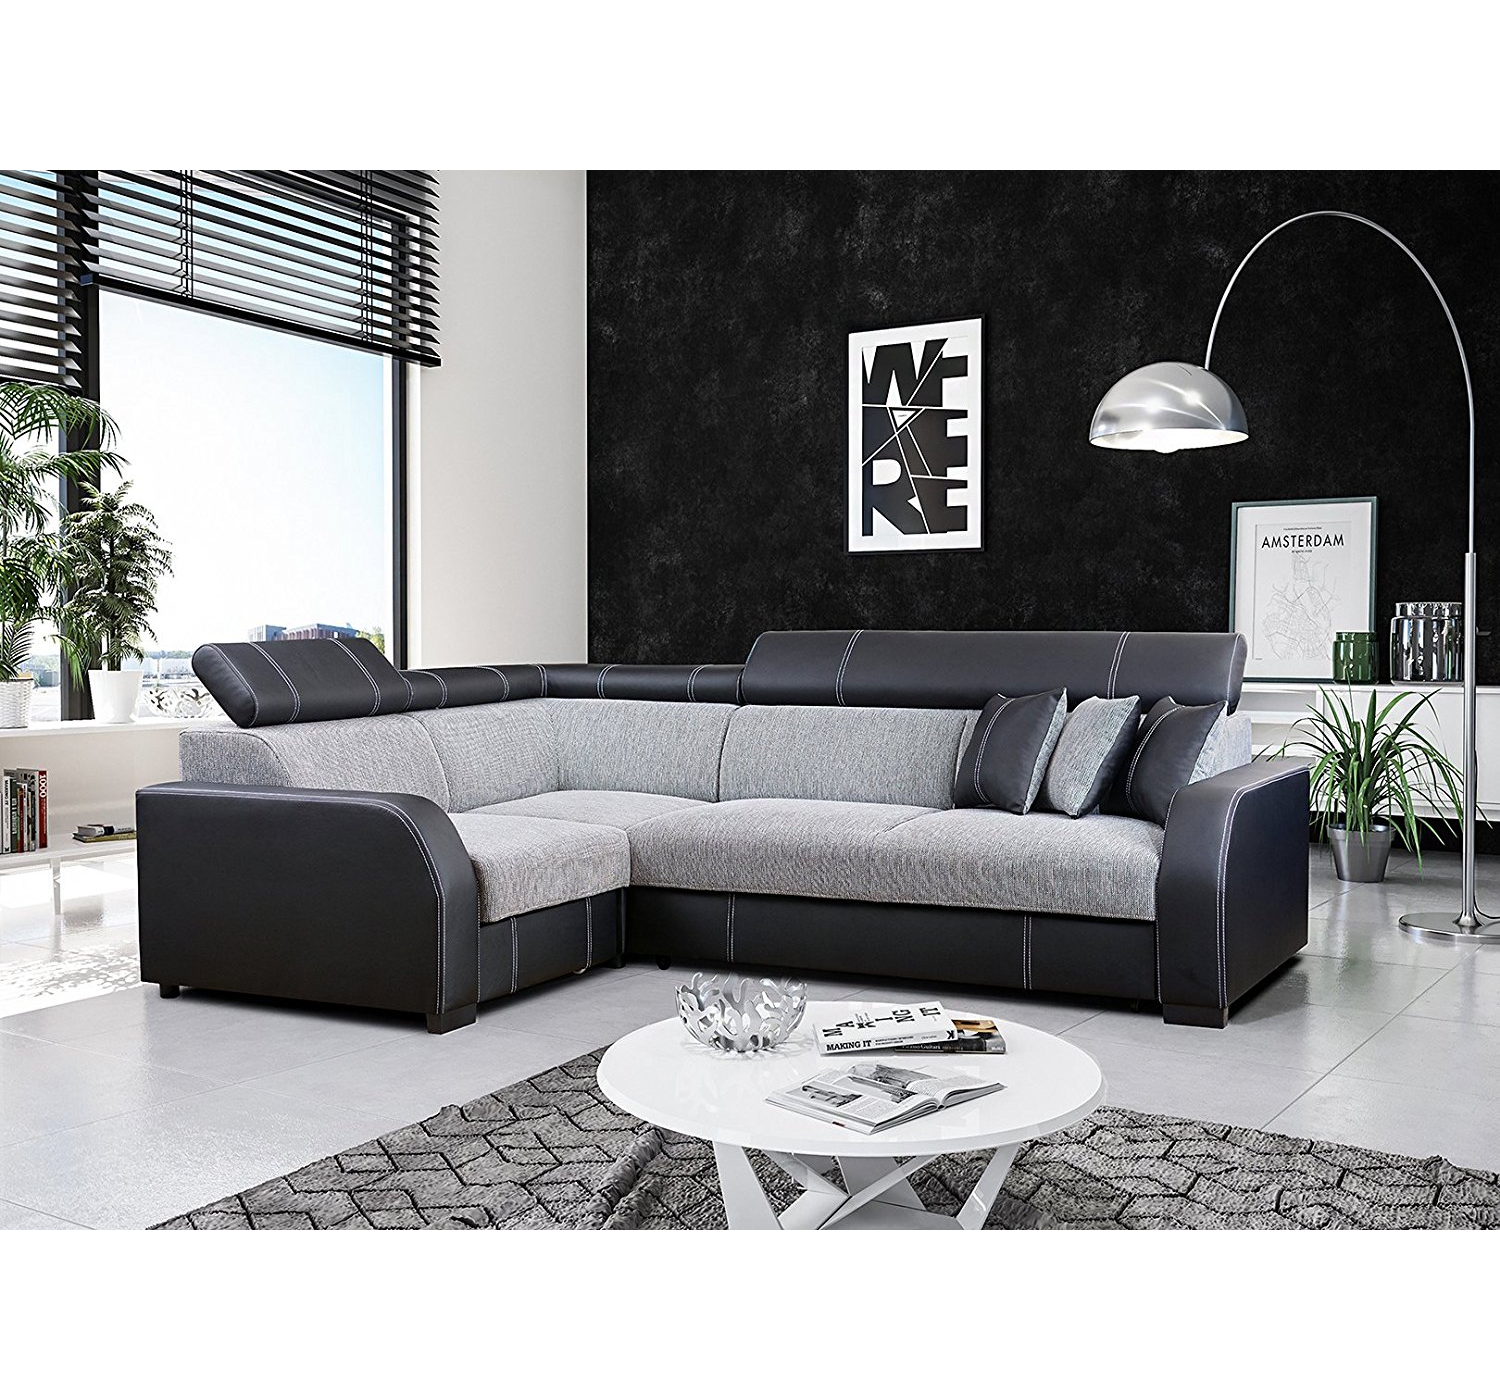 ecksofa houston schwarz m bel muller braun. Black Bedroom Furniture Sets. Home Design Ideas